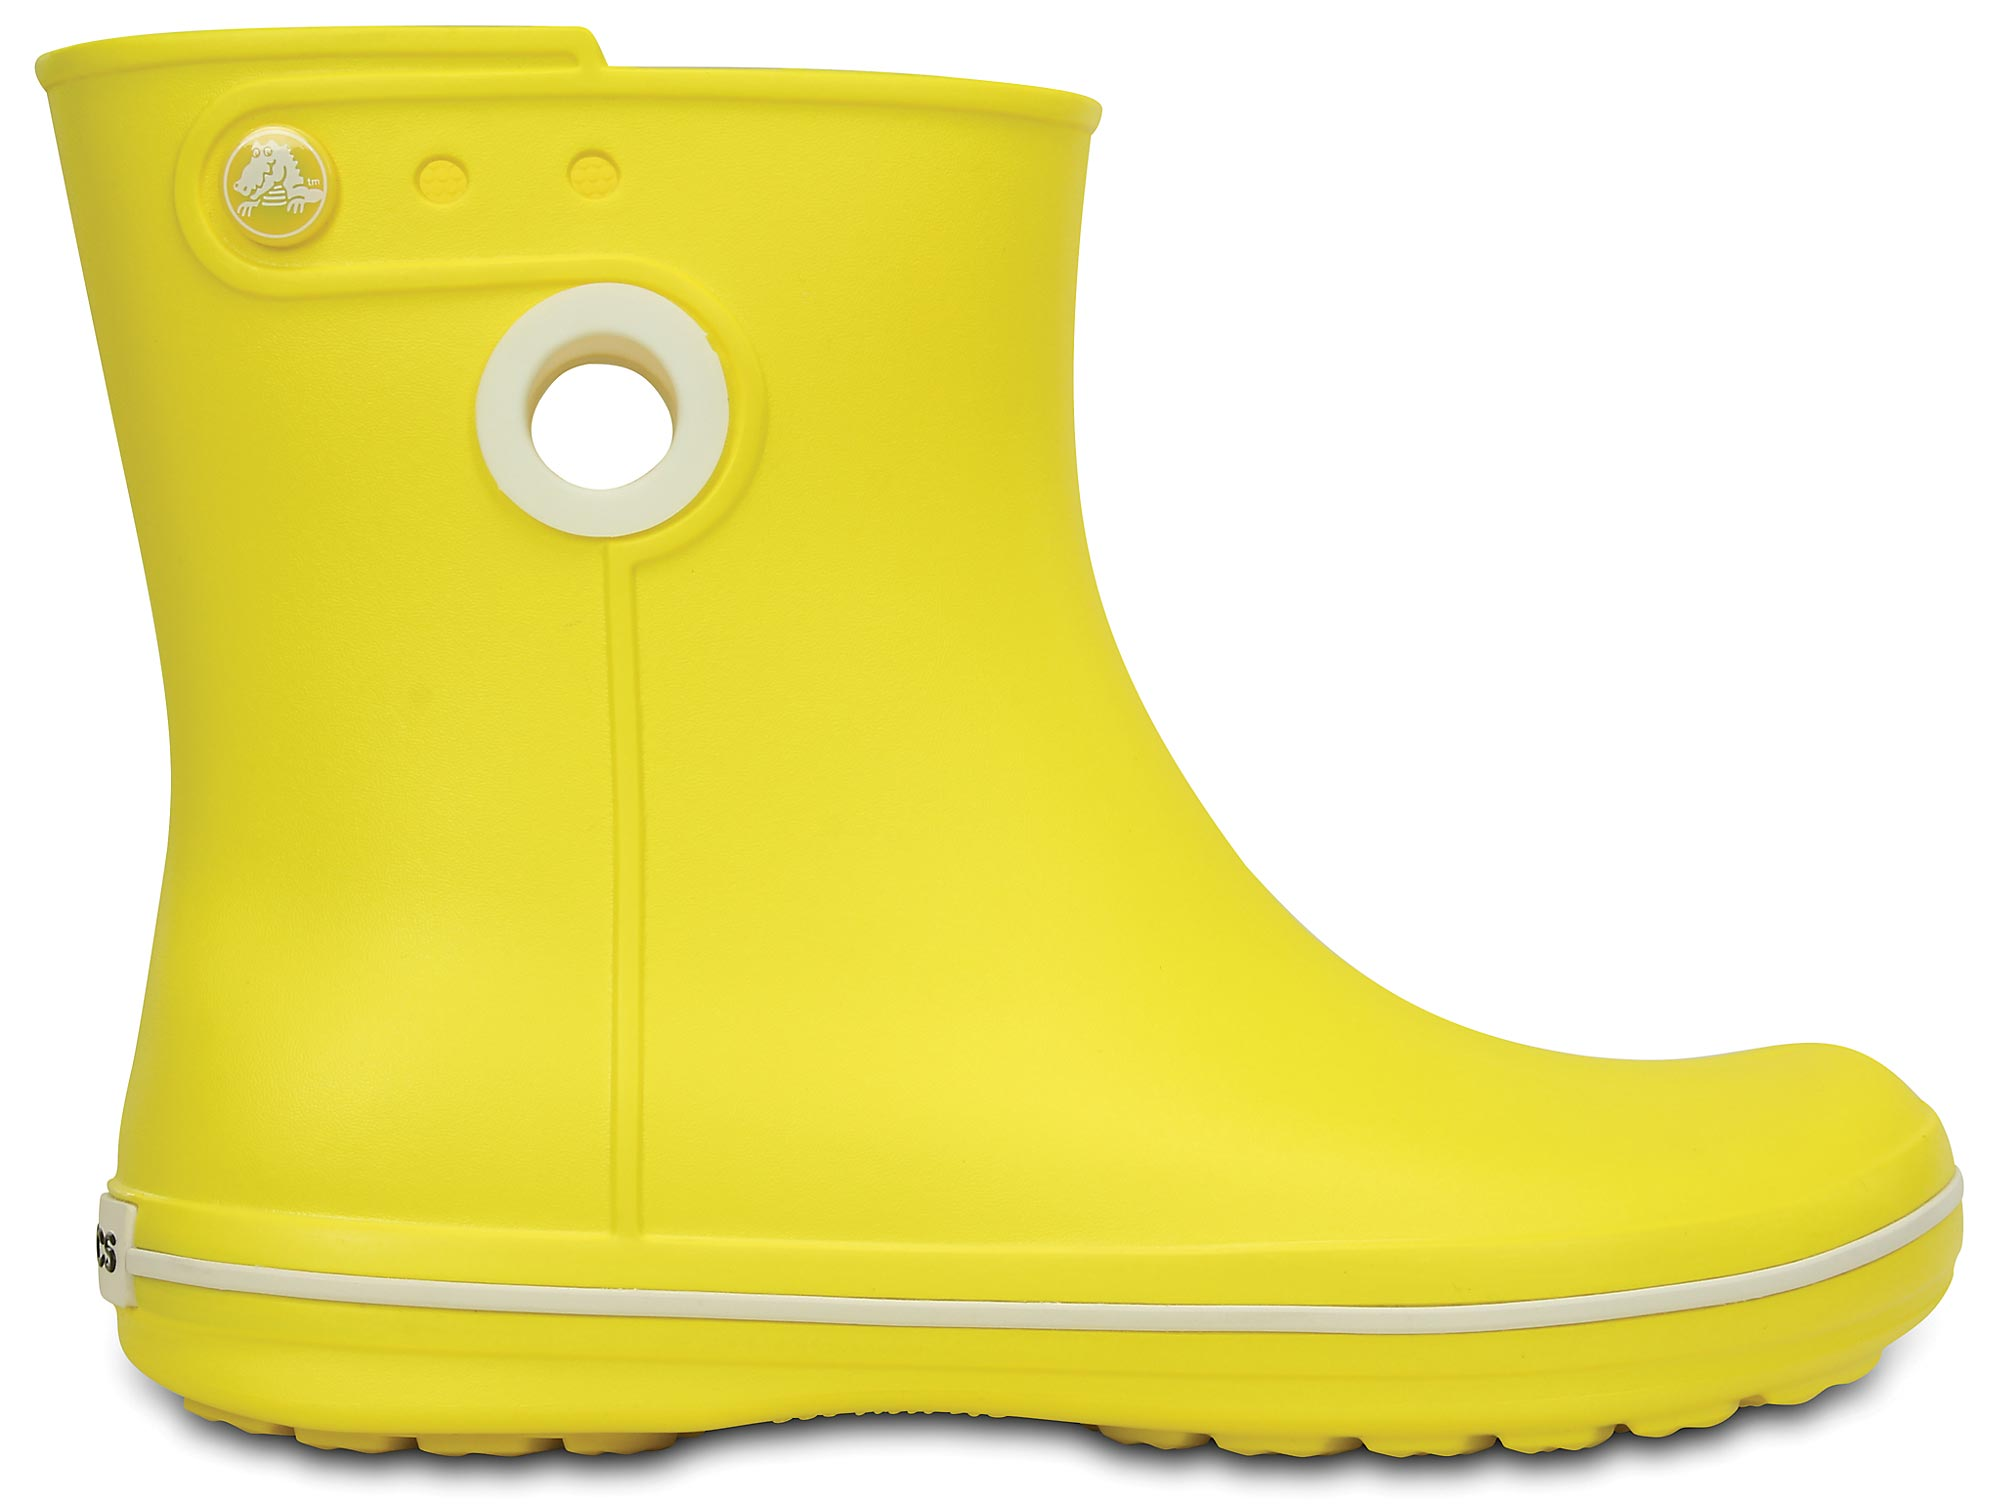 ab5027a9aa3be4 Crocs Jaunt Shorty Women Womens Croslite Rubber Boot Shoes Wellington   Picture 2 of 4  Picture 3 of 4  Picture 4 of 4